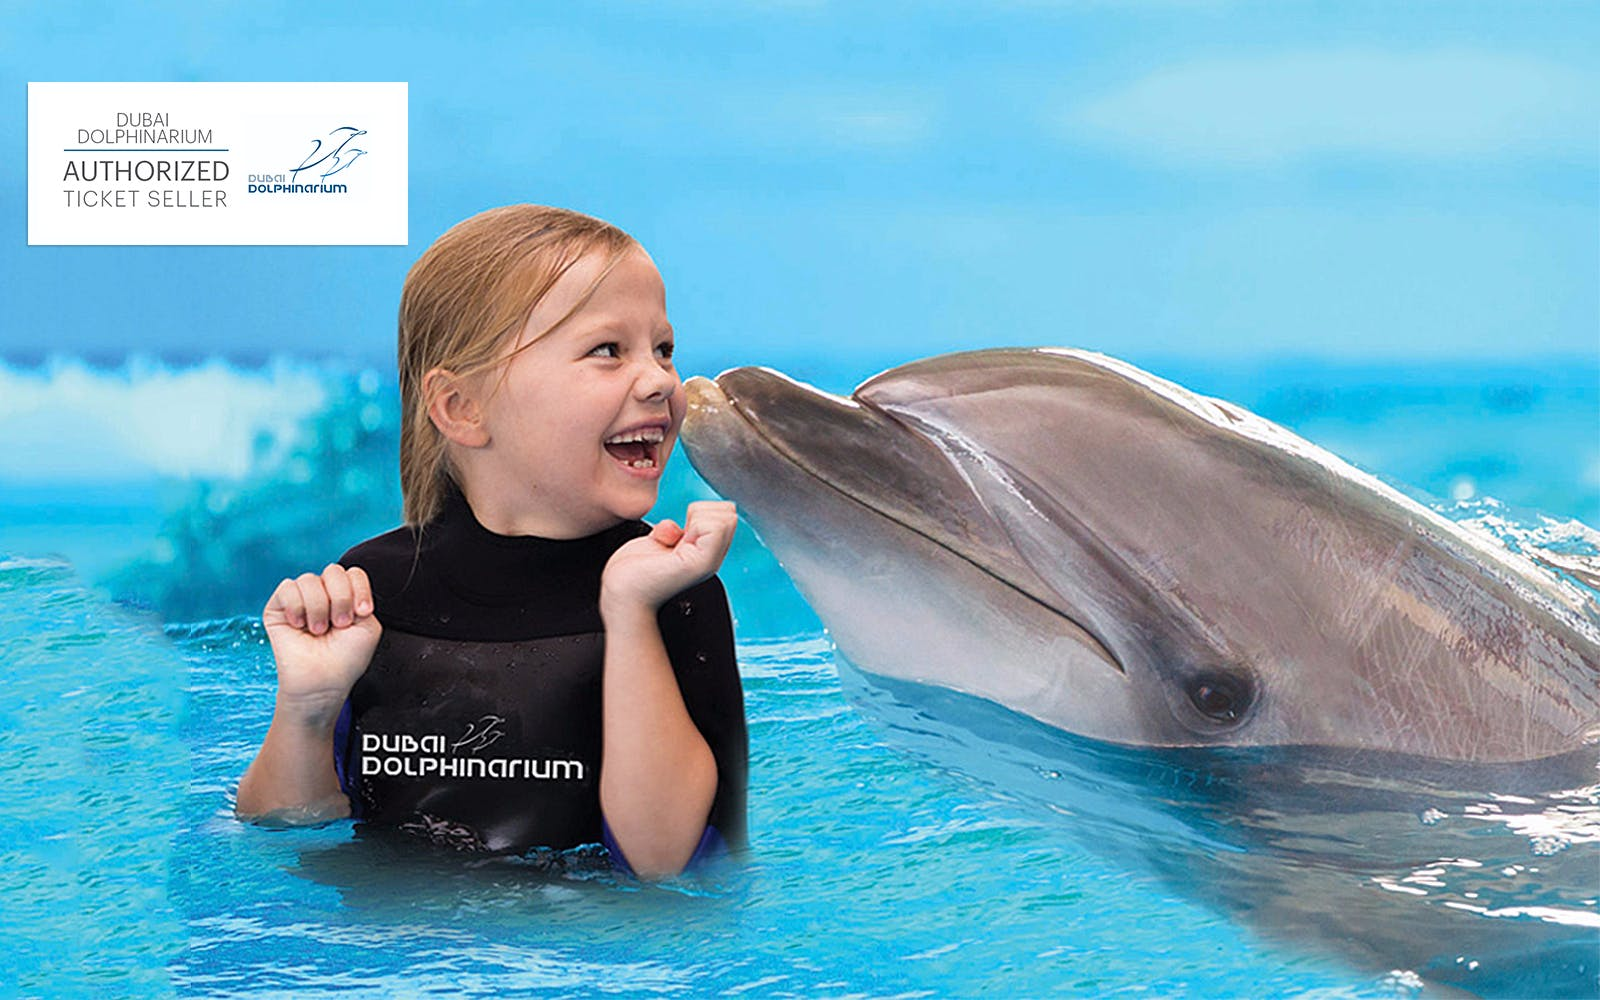 dubai-dolphinarium swimming with dolphins